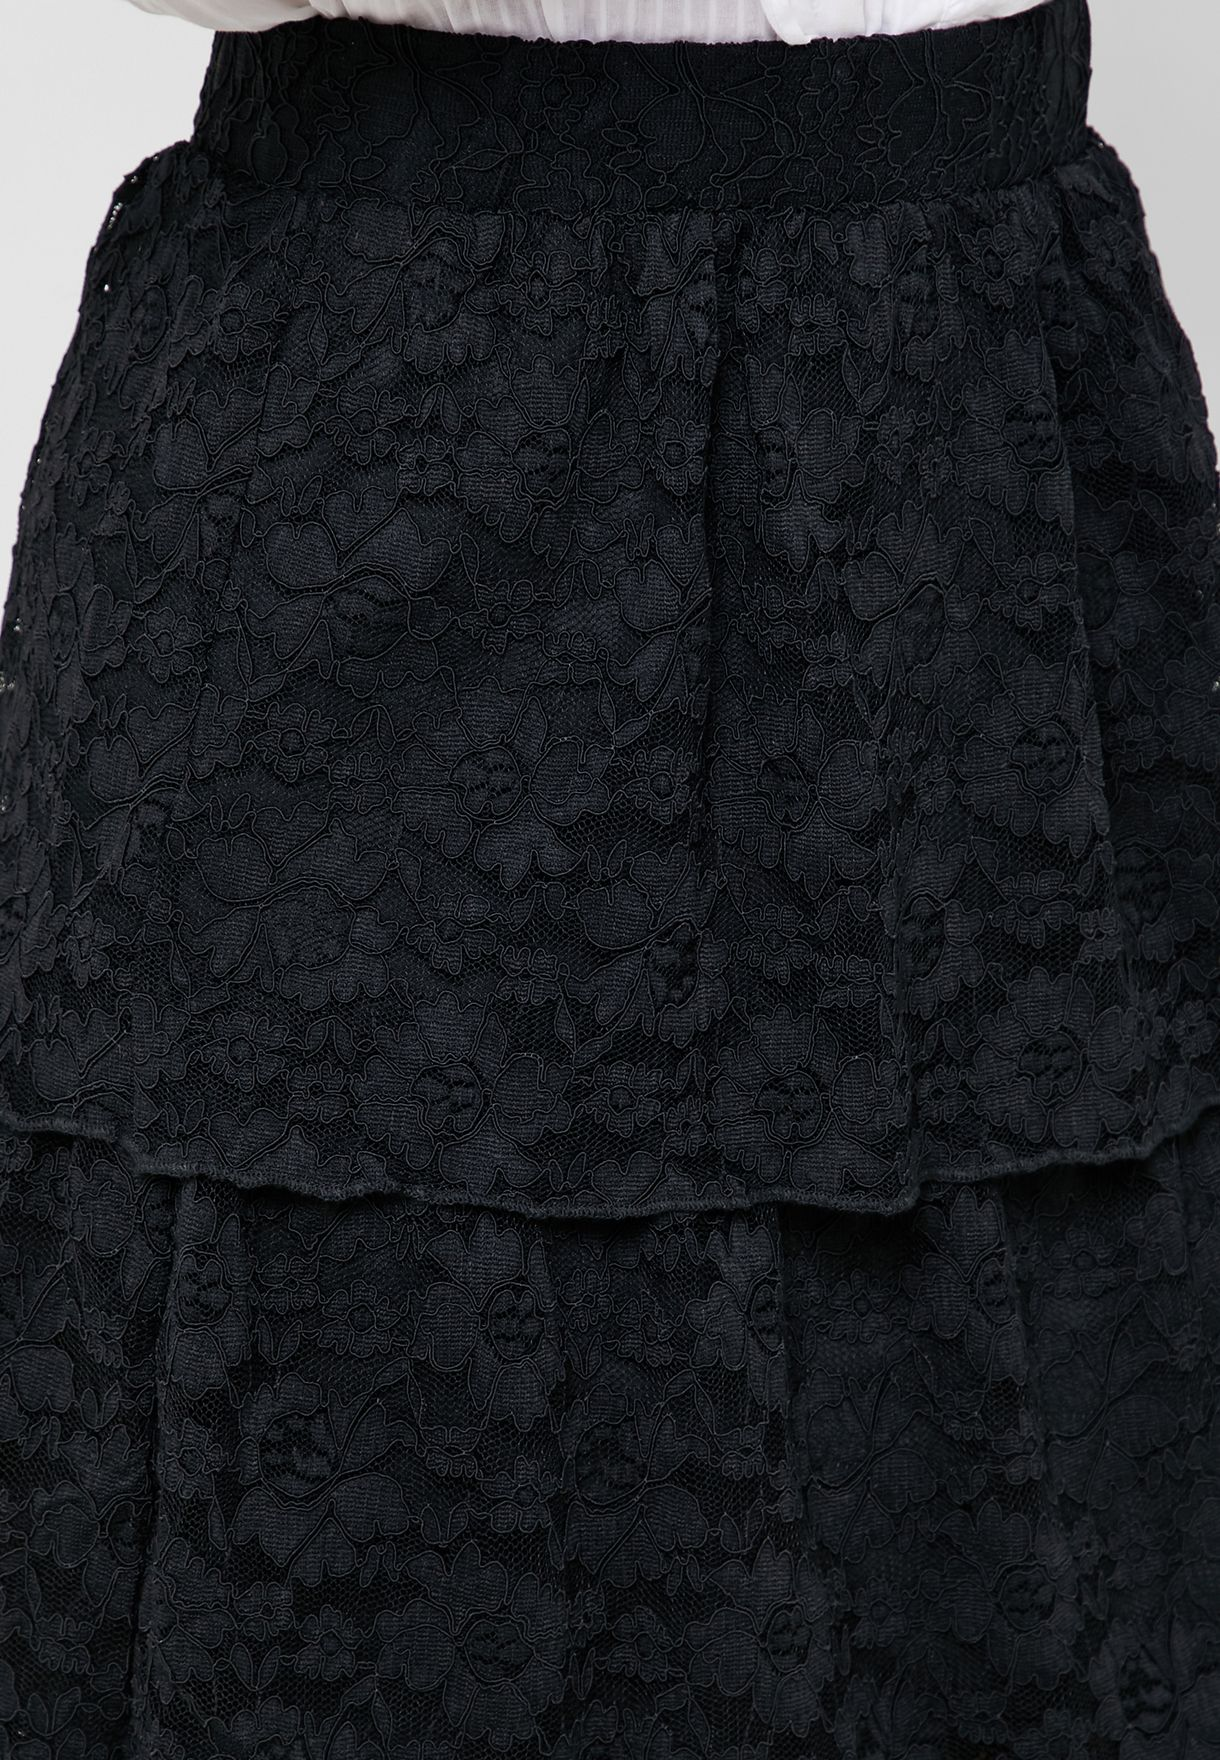 Layered Lace Skirt